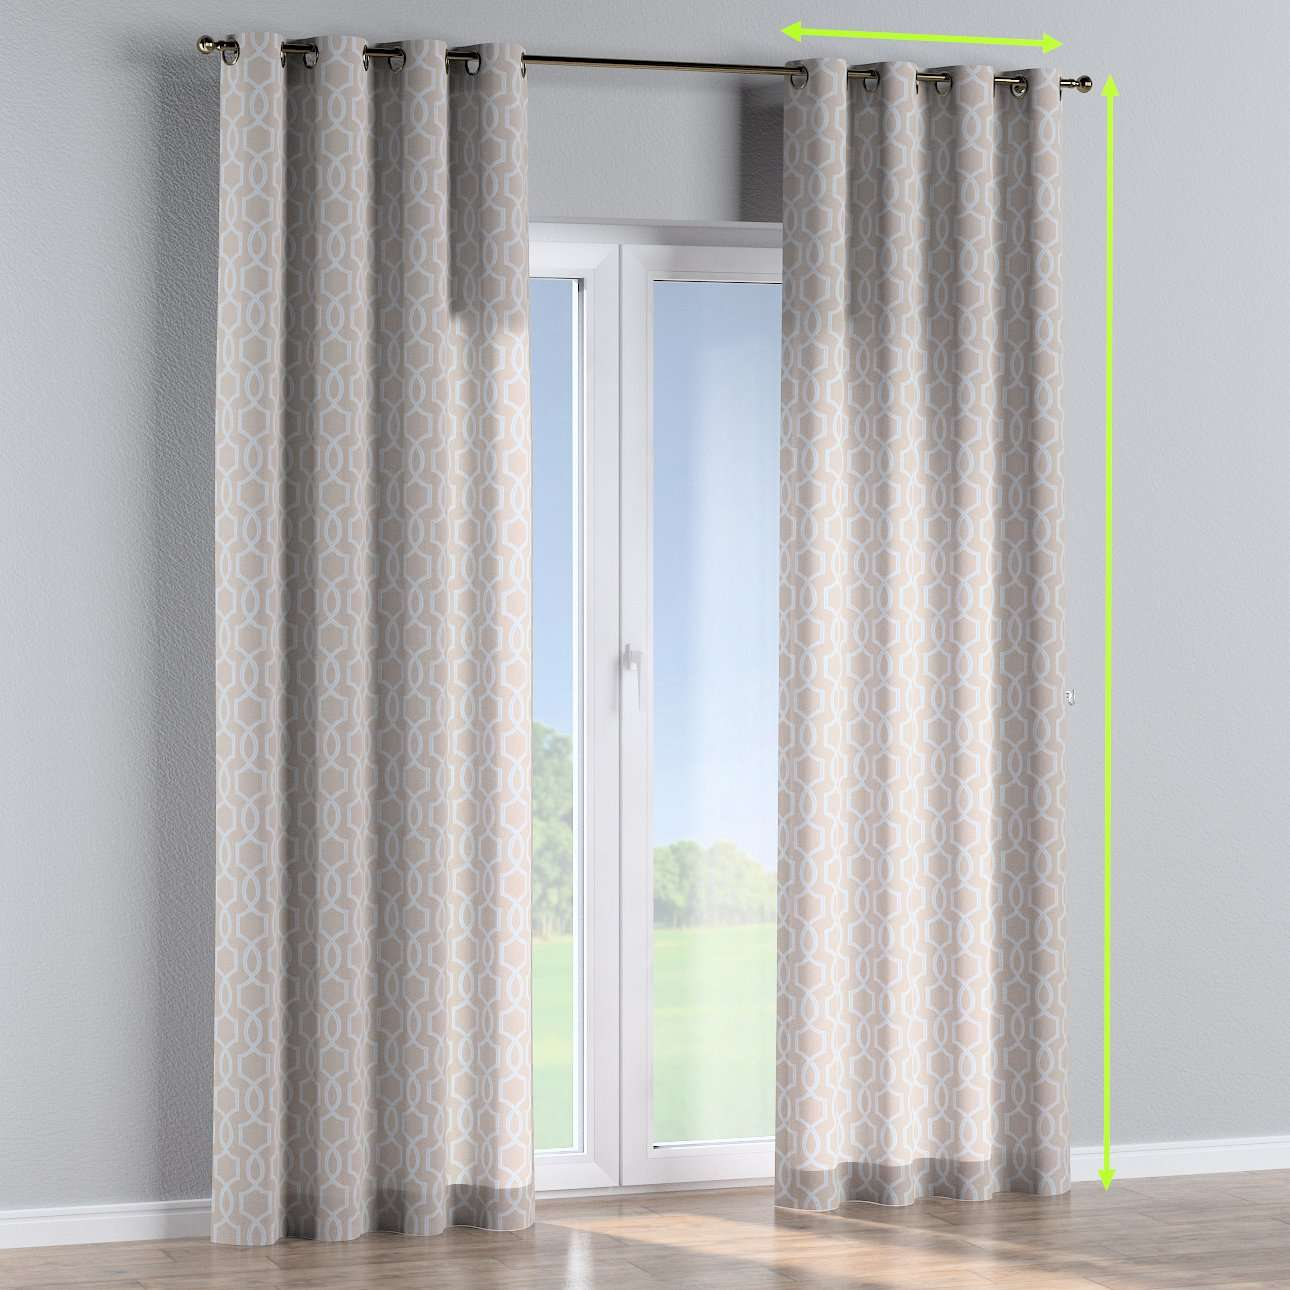 Eyelet curtains in collection Comics/Geometrical, fabric: 141-26